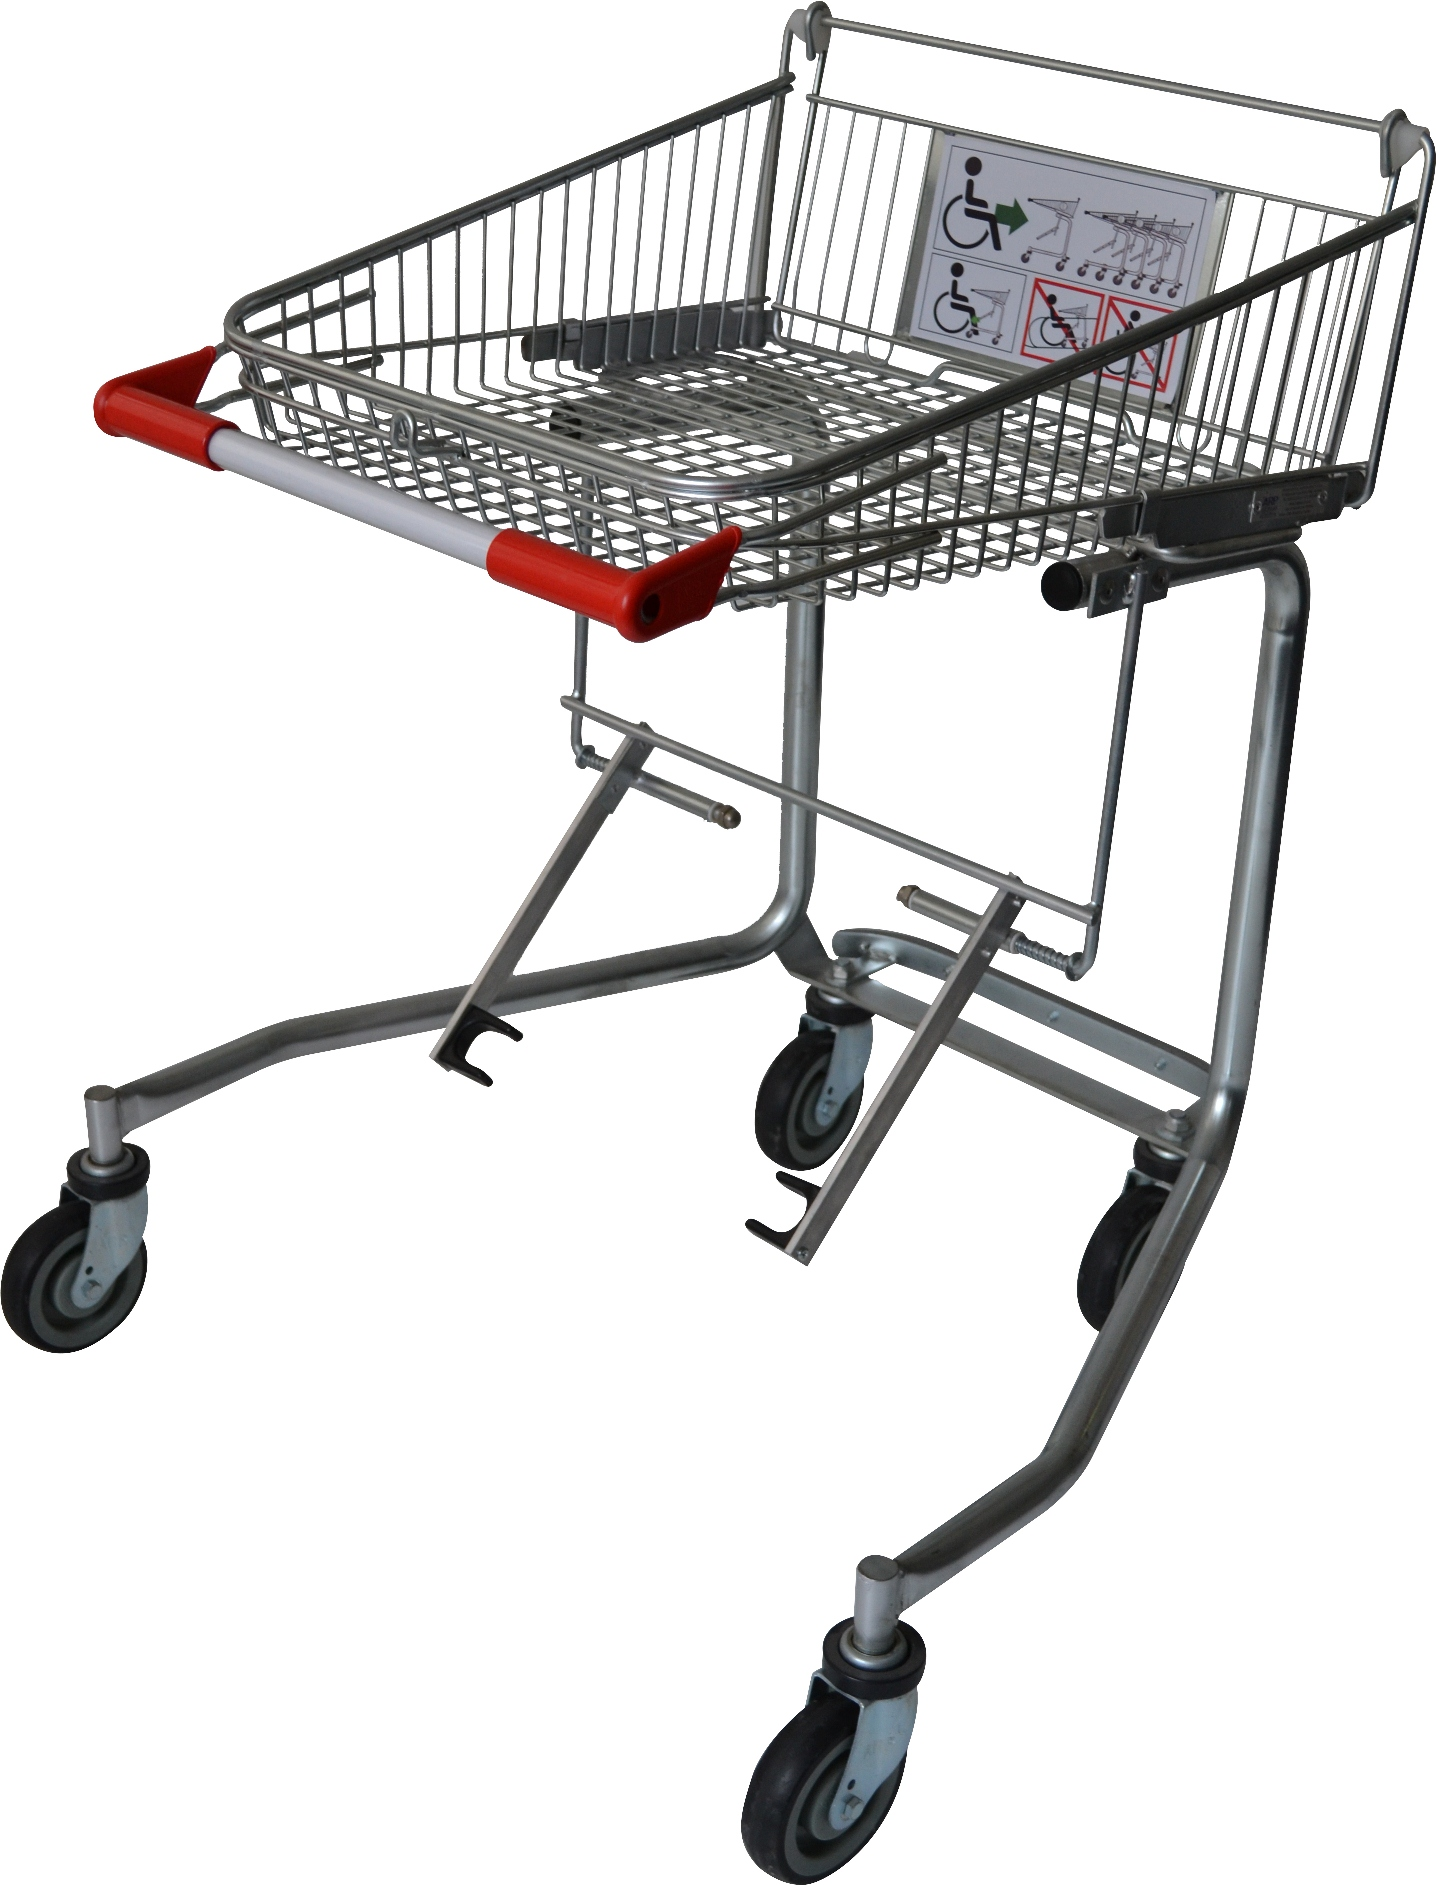 Make the shopping experience convenient with our disability shopping trolley, specifically designed for customers using wheelchair. The disability trolley simply locks into the wheelchair making grocery shopping easy & convenient. Enquire today!